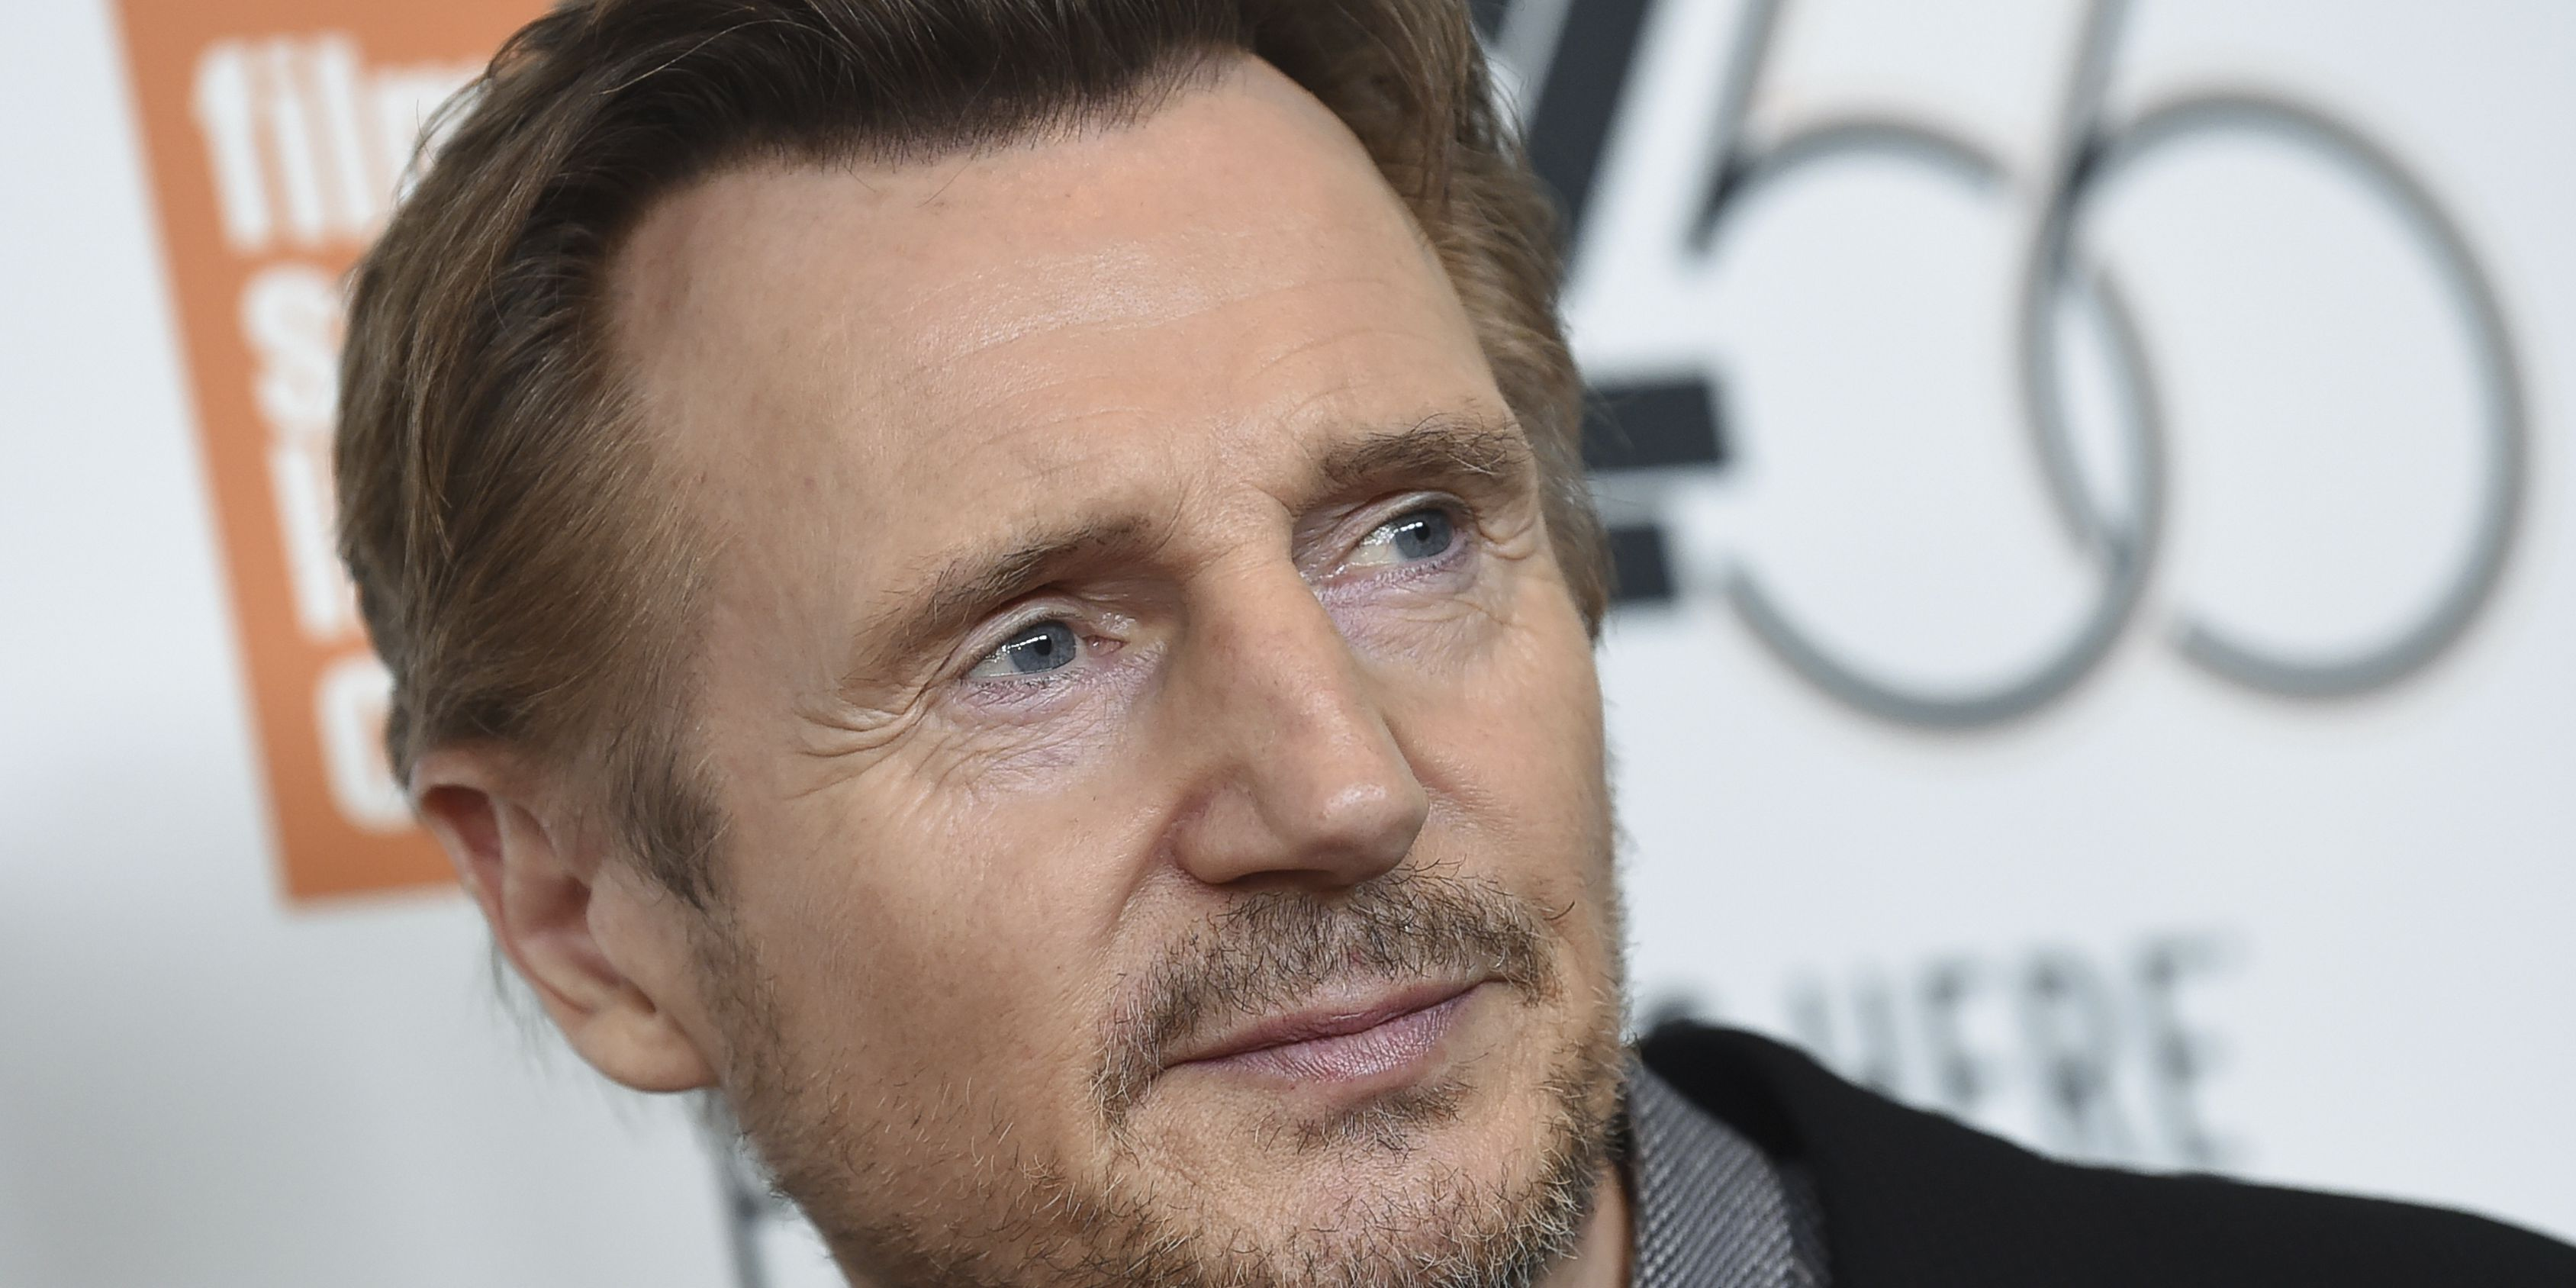 Liam Neeson to star in action flick being filmed in Cleveland, casting call for area actors